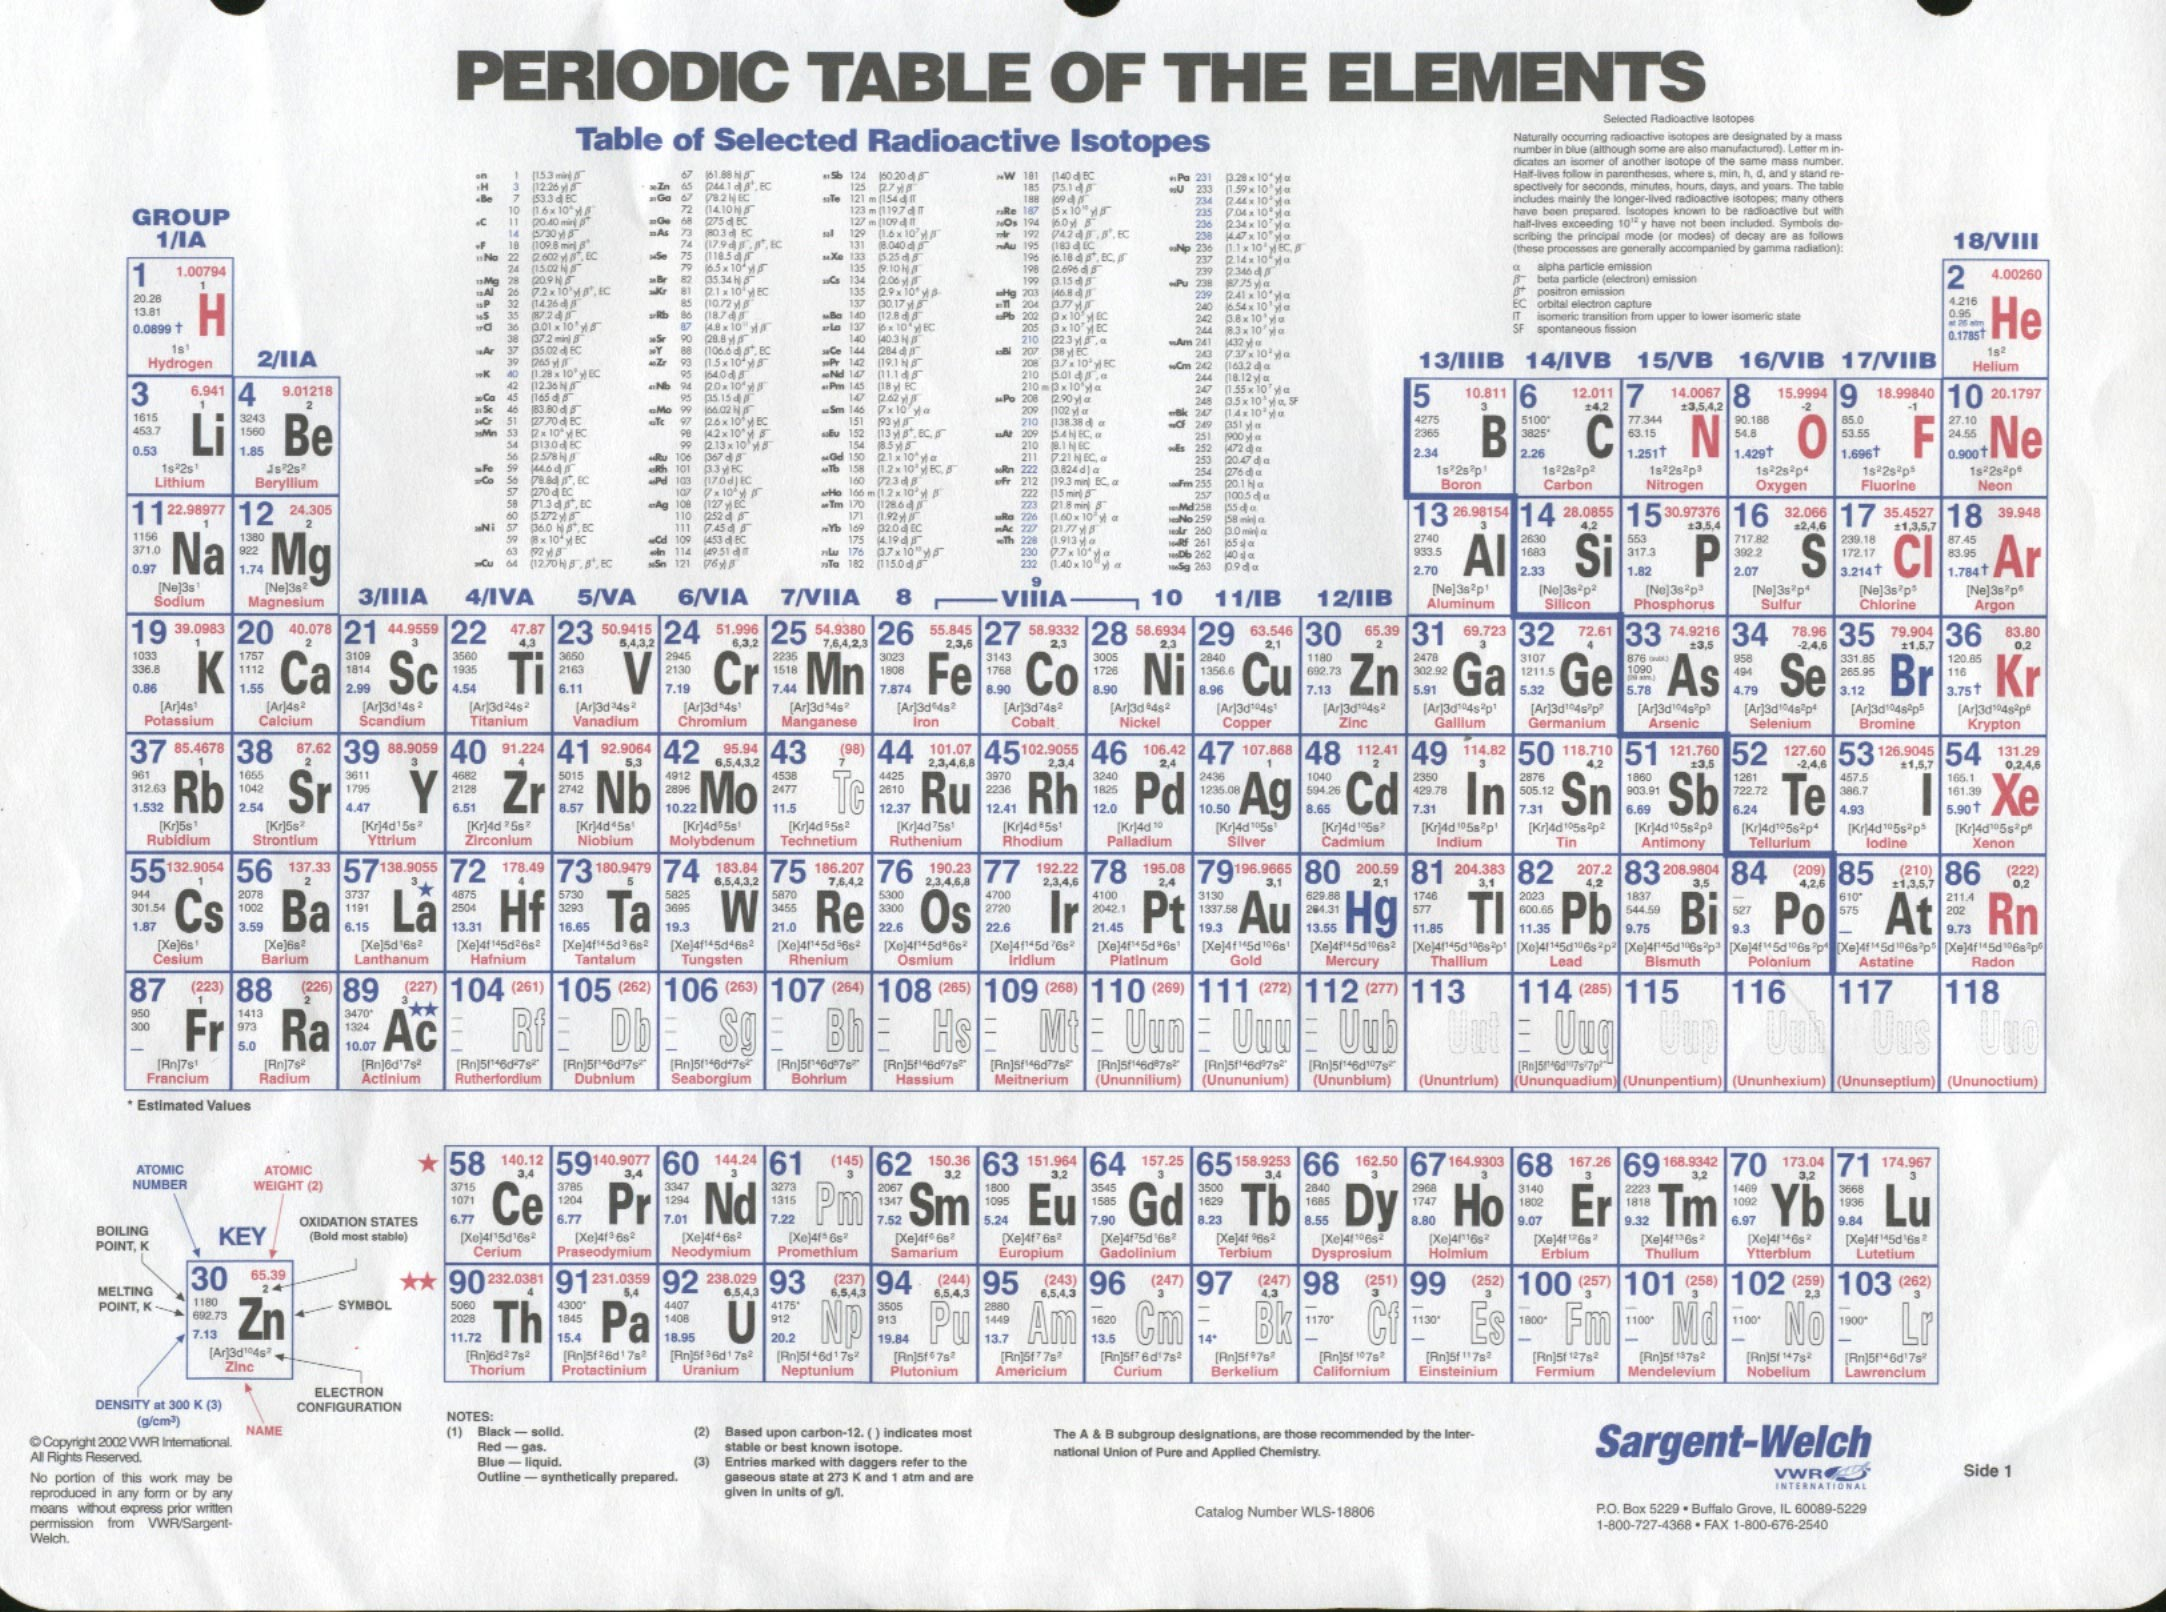 Periodic table of elements periodic table of elementssargent welchg 6002kb urtaz Choice Image